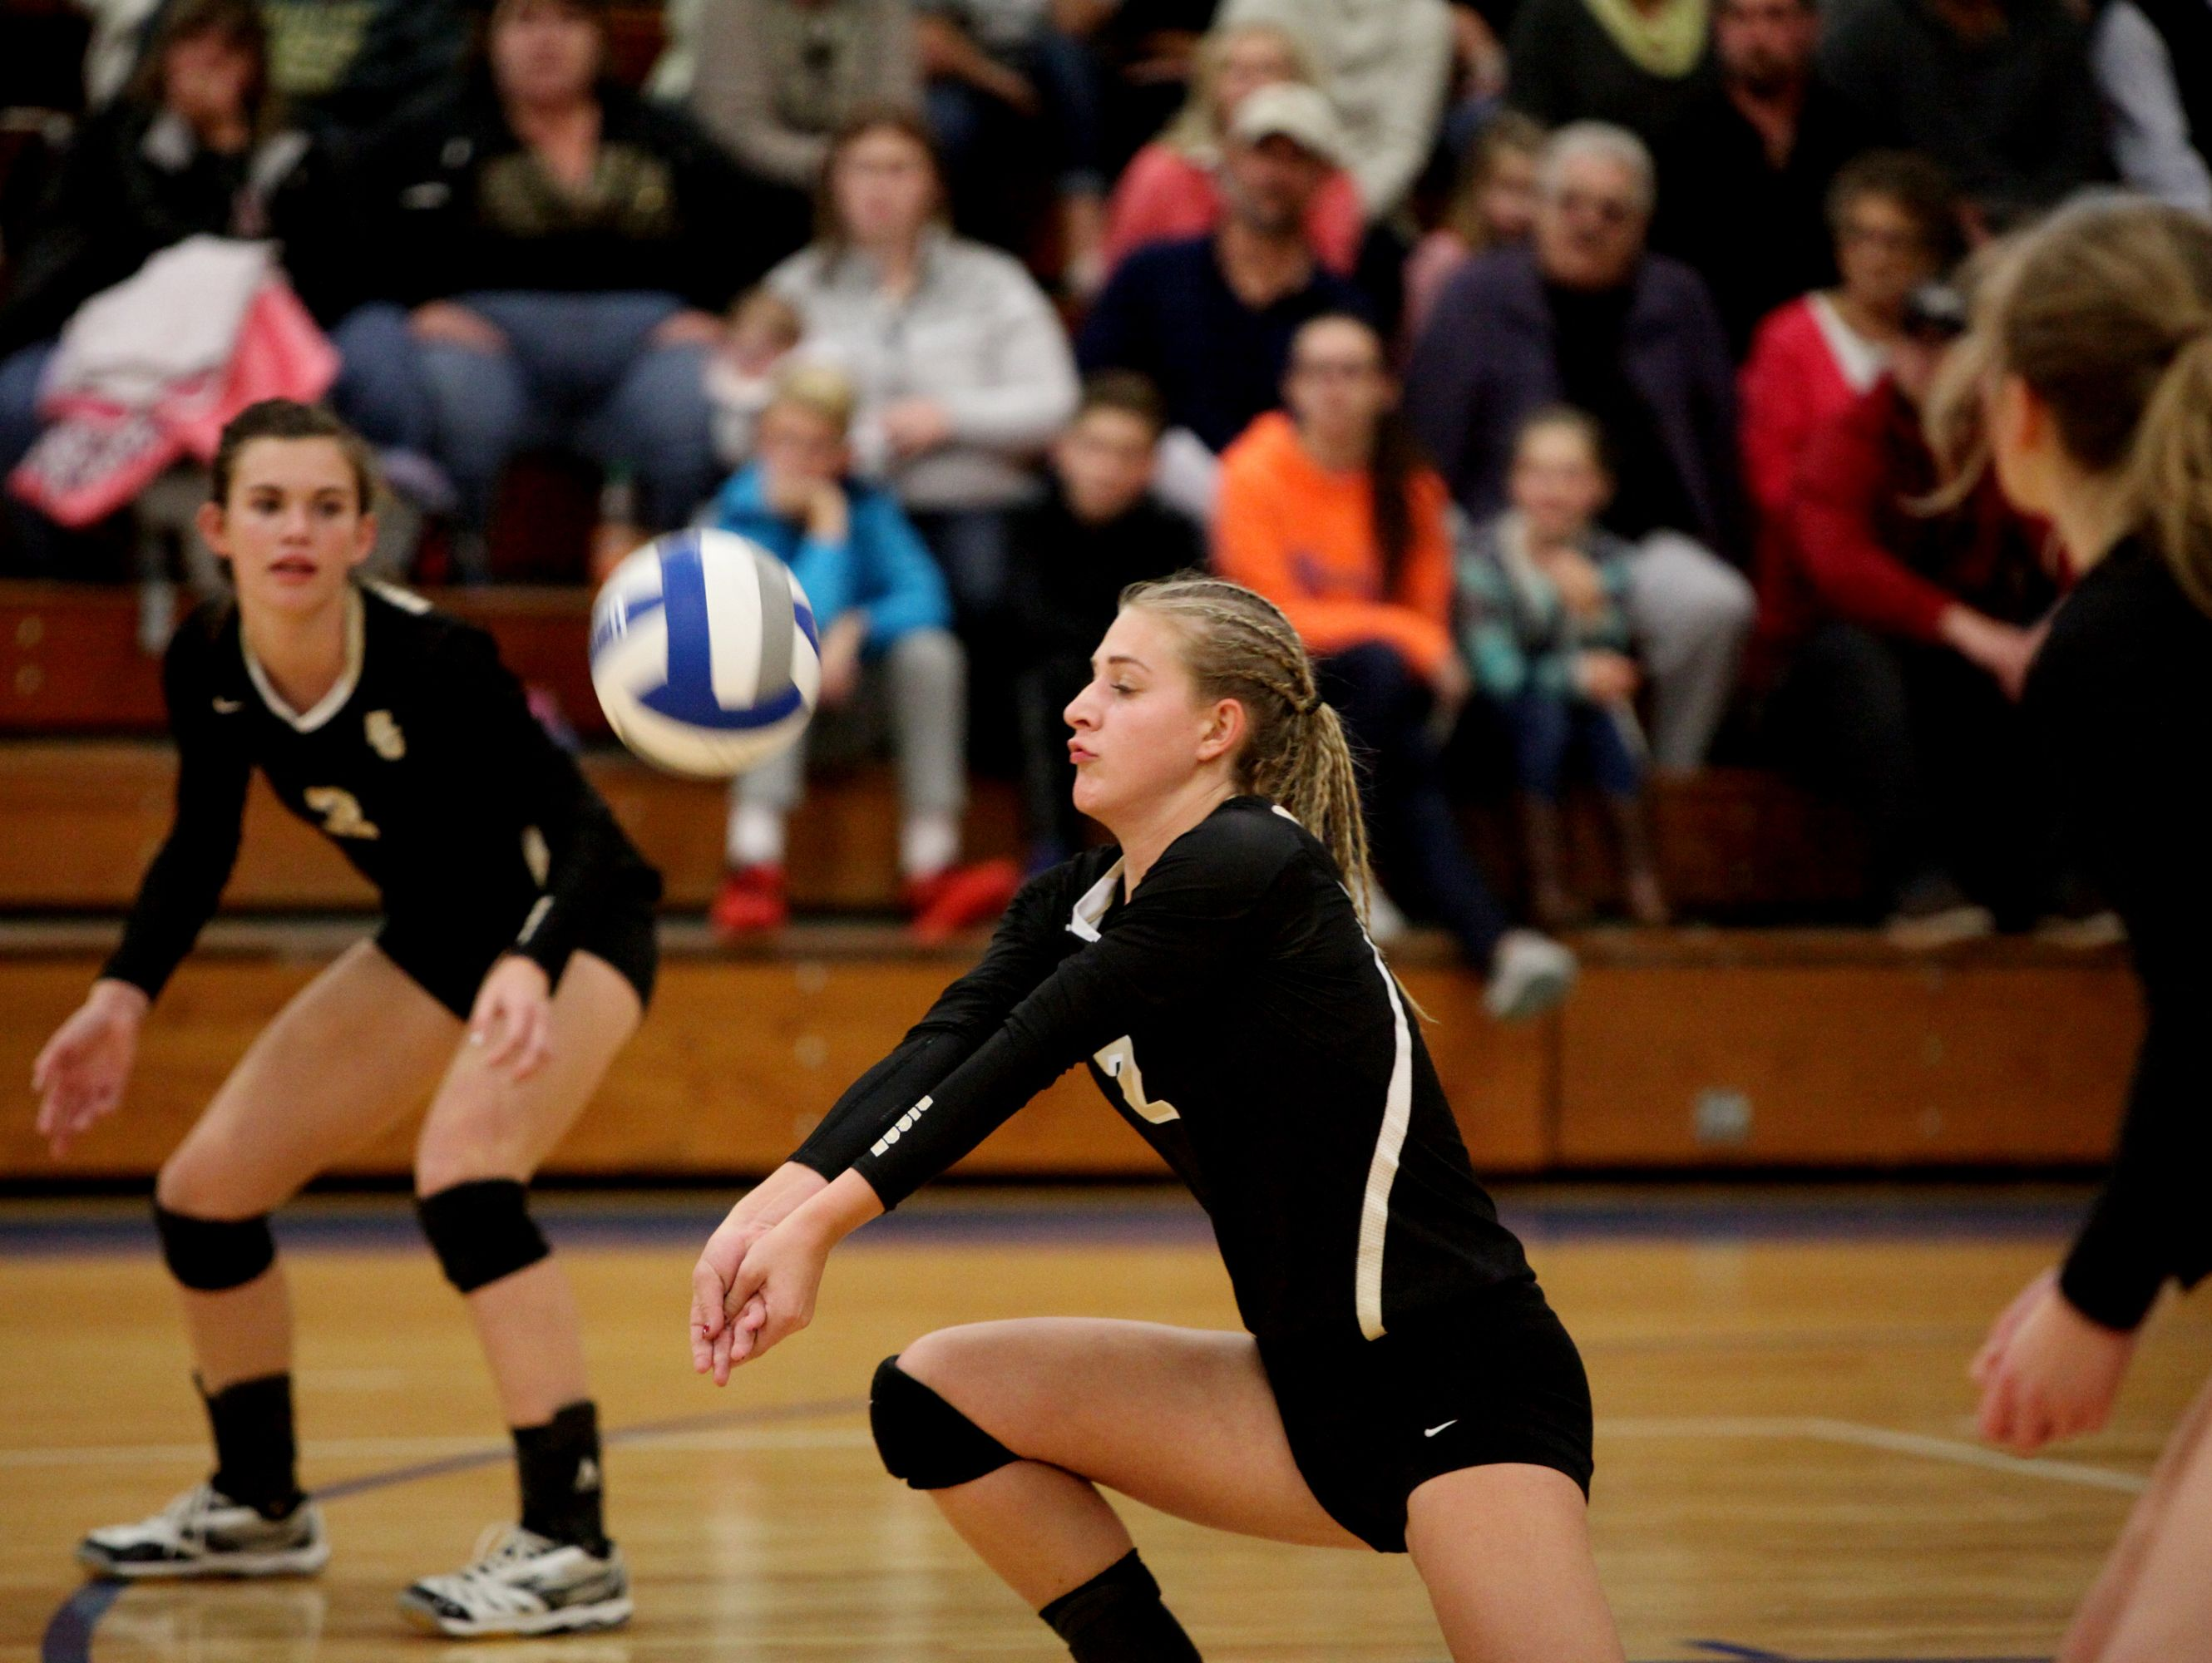 Buffalo Gaps's Abby Flint bumps the ball during the 2A girls volleyball championship at R.E. Lee High School in Staunton on Saturday Nov. 12, 2016.